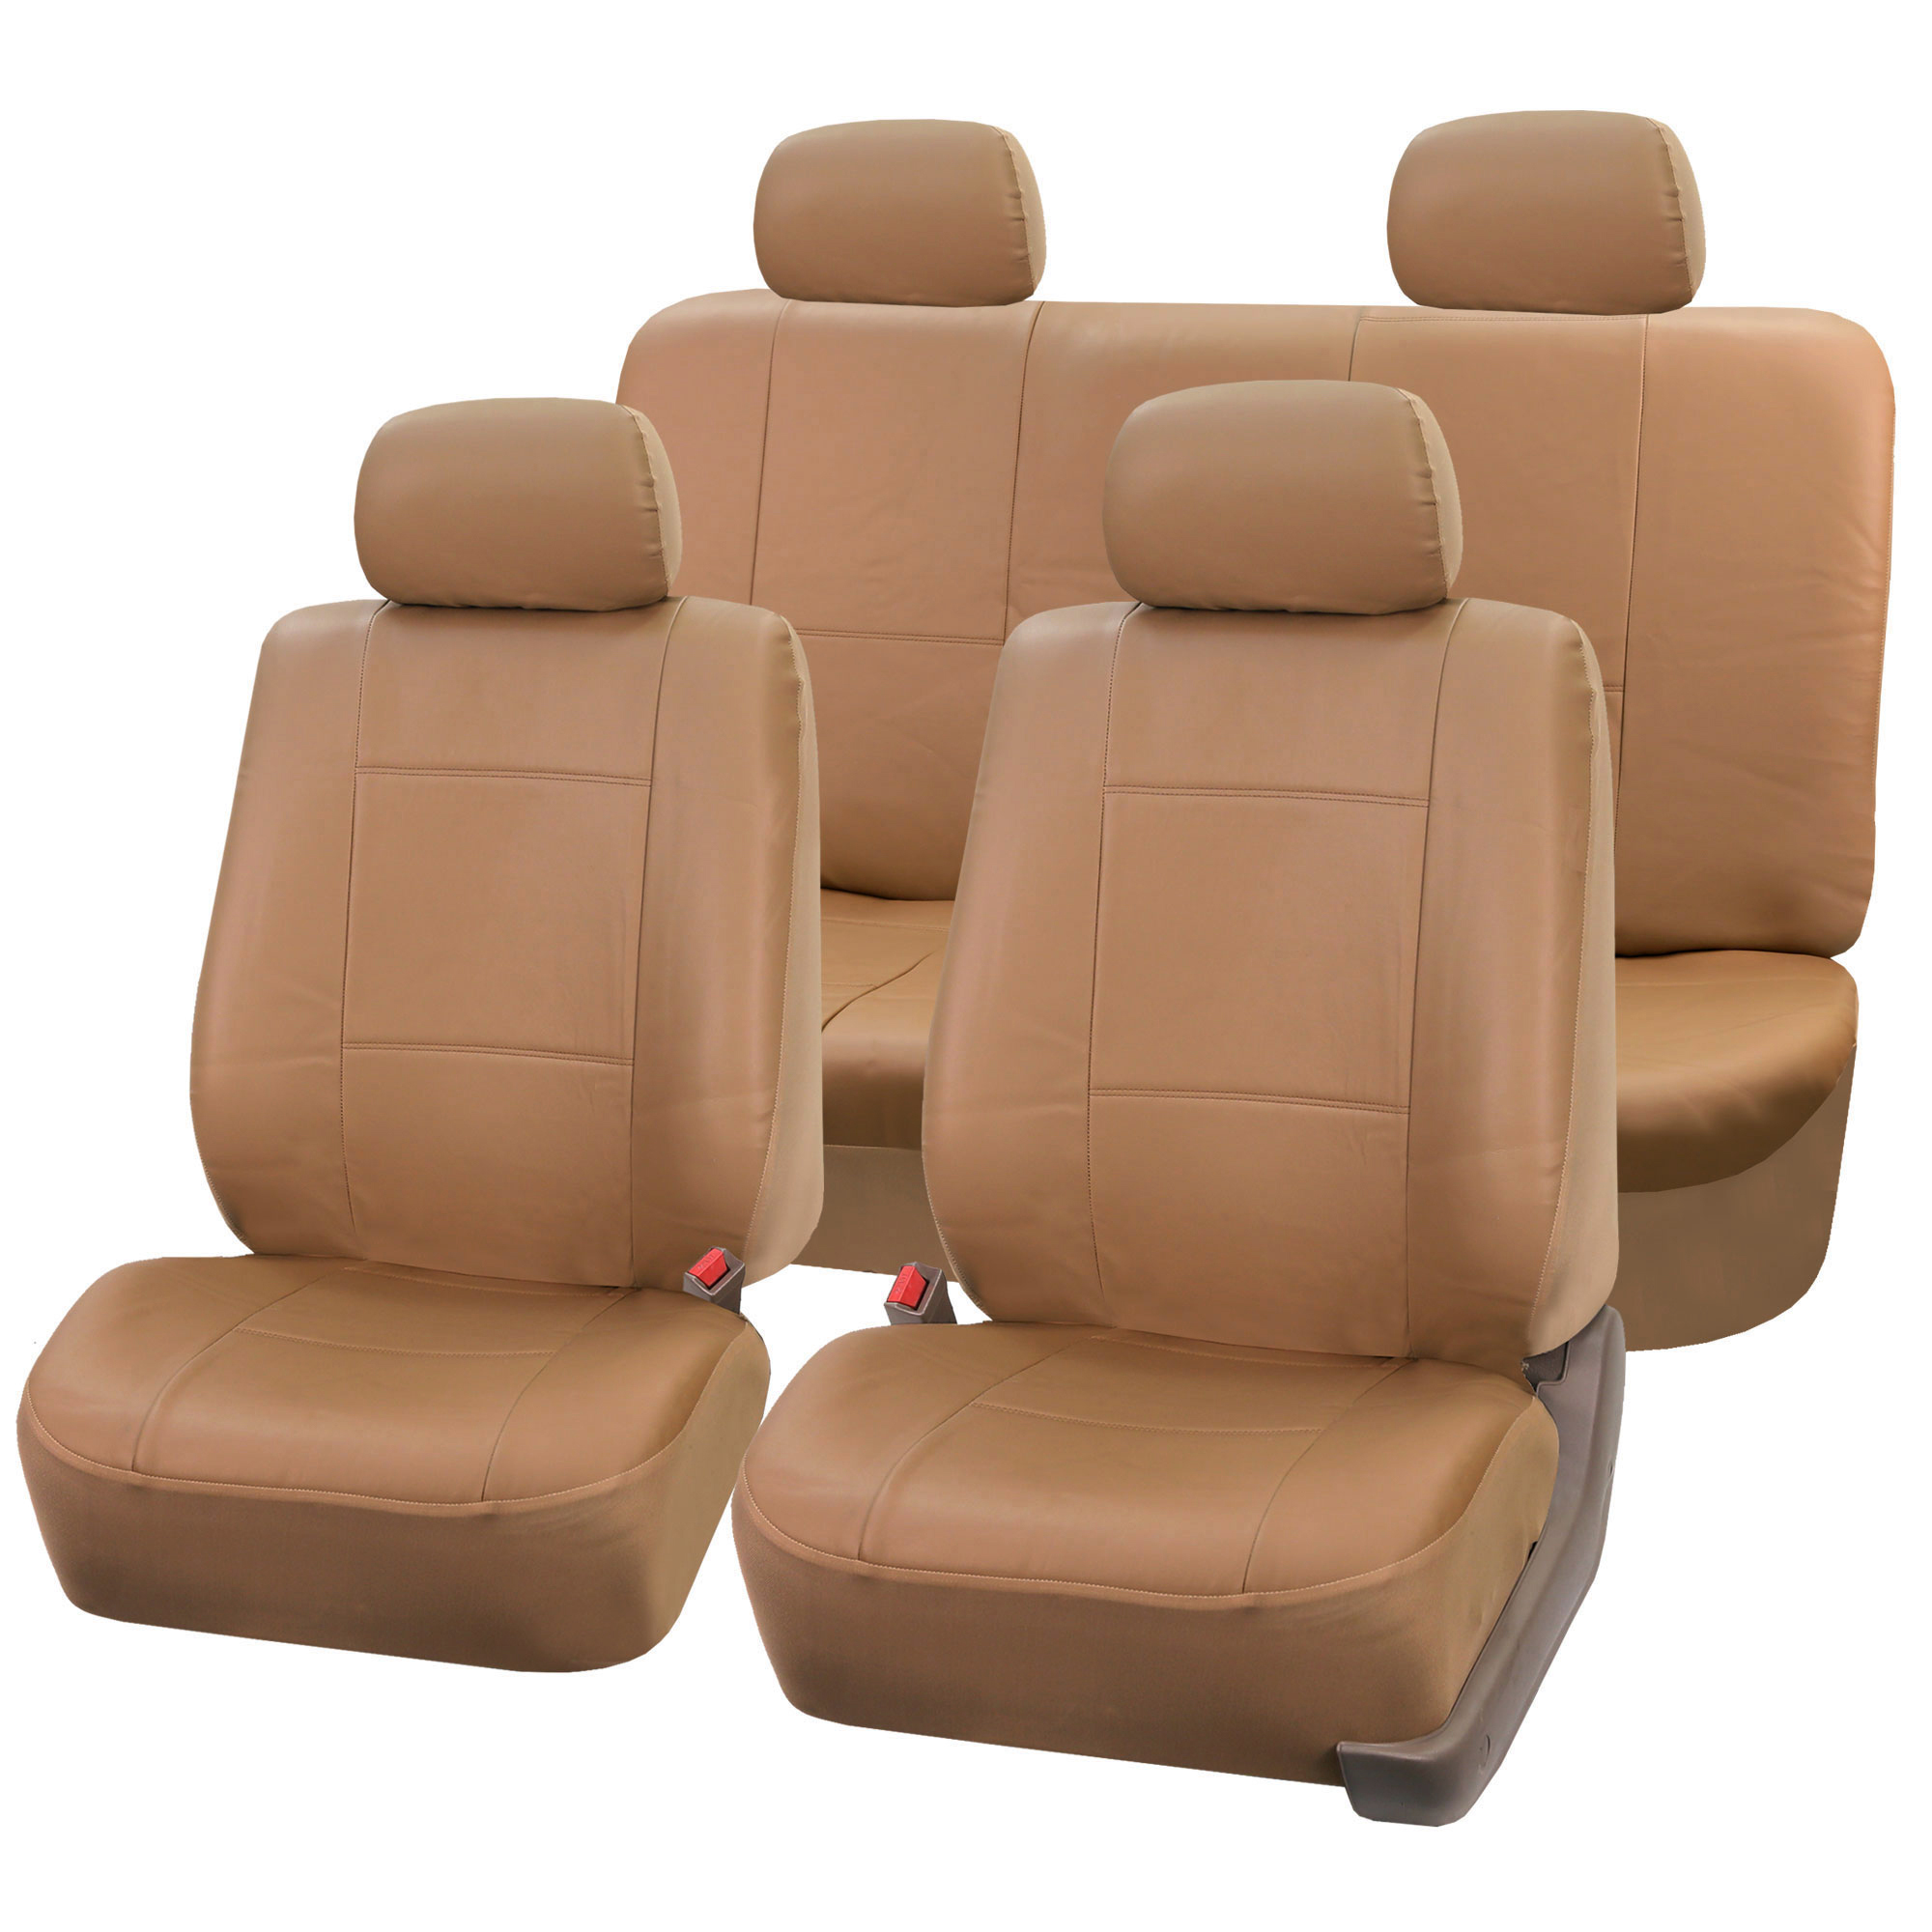 Bench Seat Covers For Car Seats